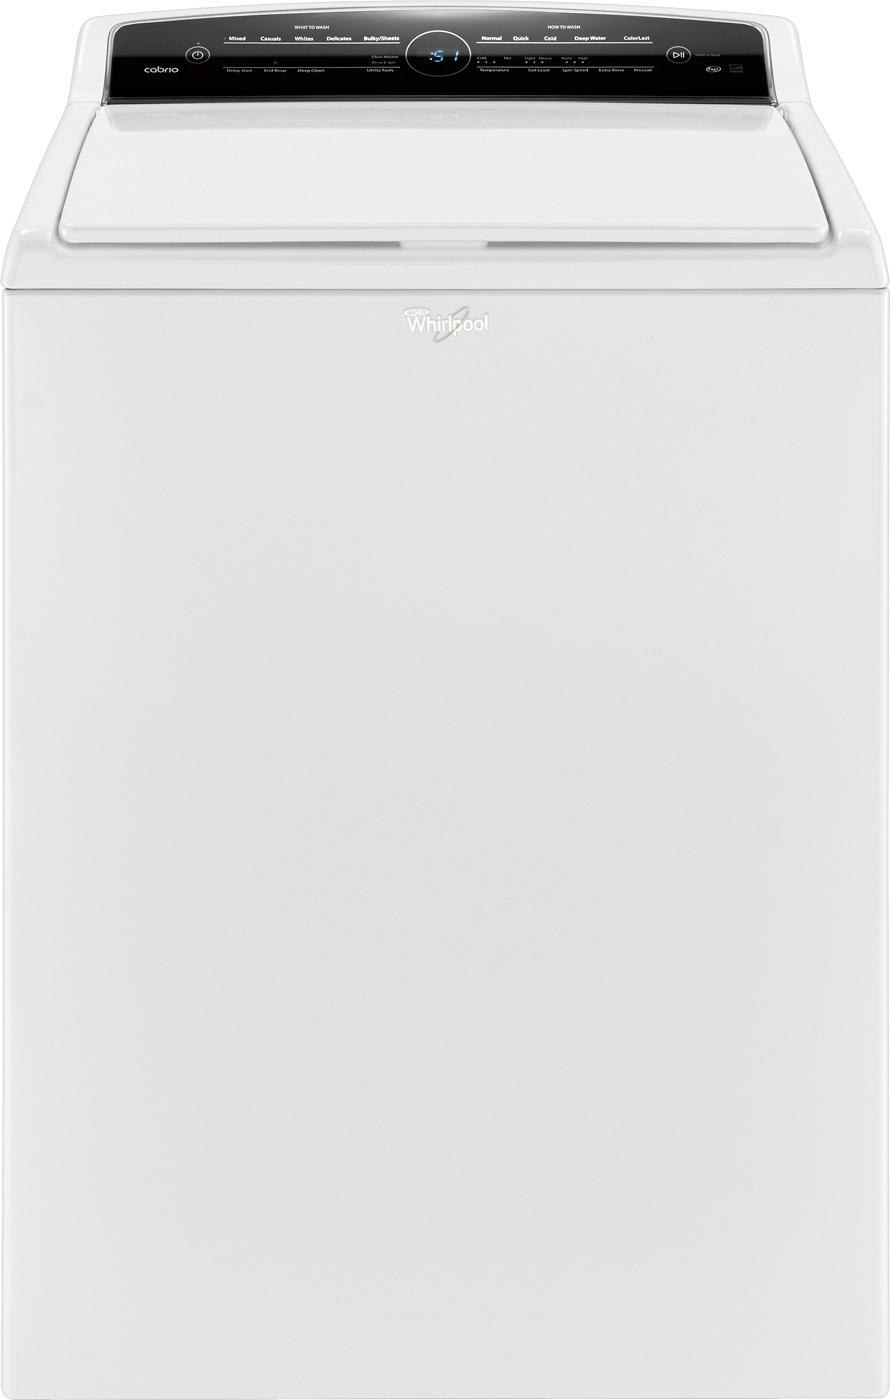 Whirlpool Dishwasher Parts Canada Whirlpool Cabrio 4 8 Cu Ft 26 Cycle High Efficiency Top Loading Washer White